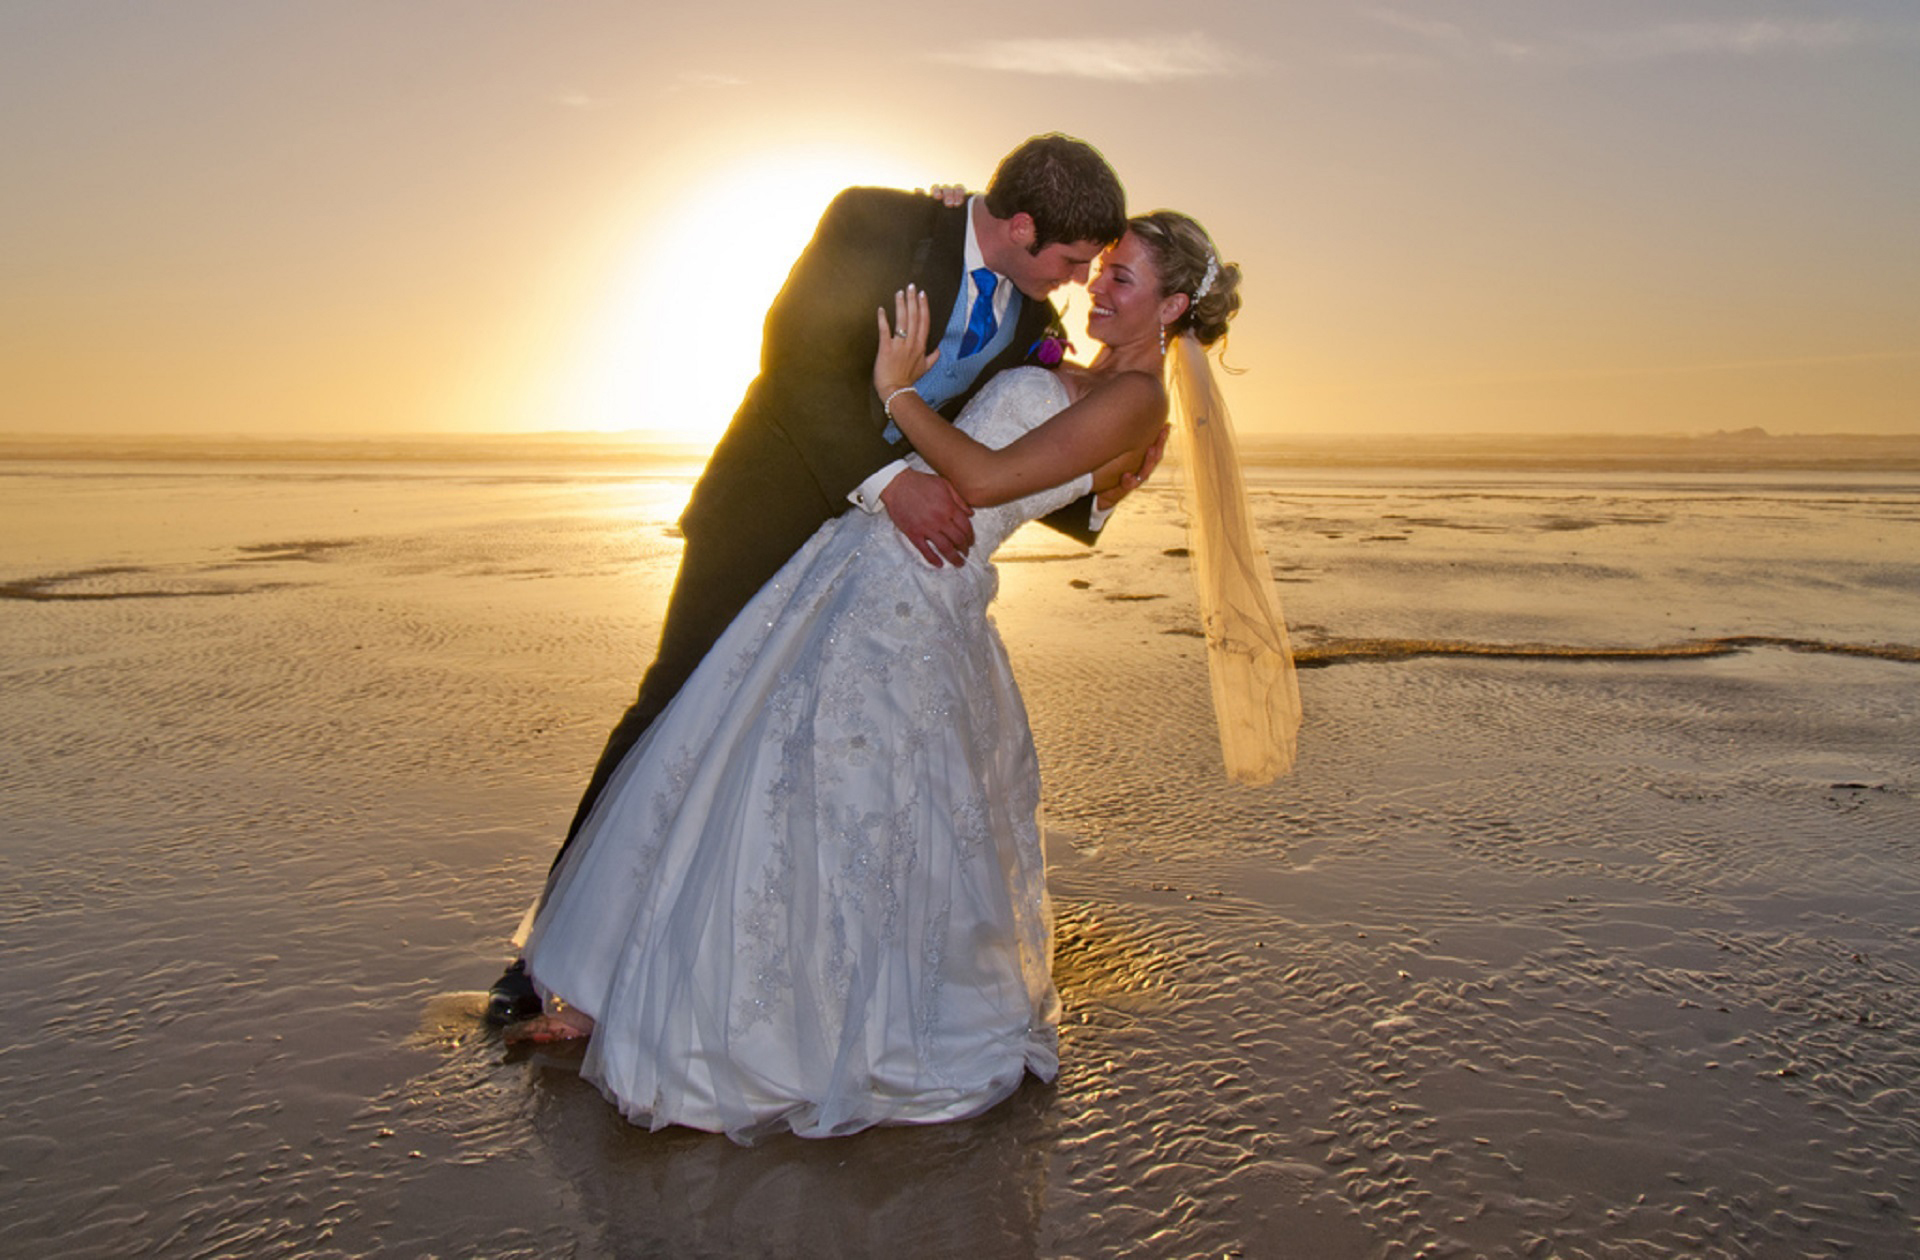 beach-wedding-615219.jpg